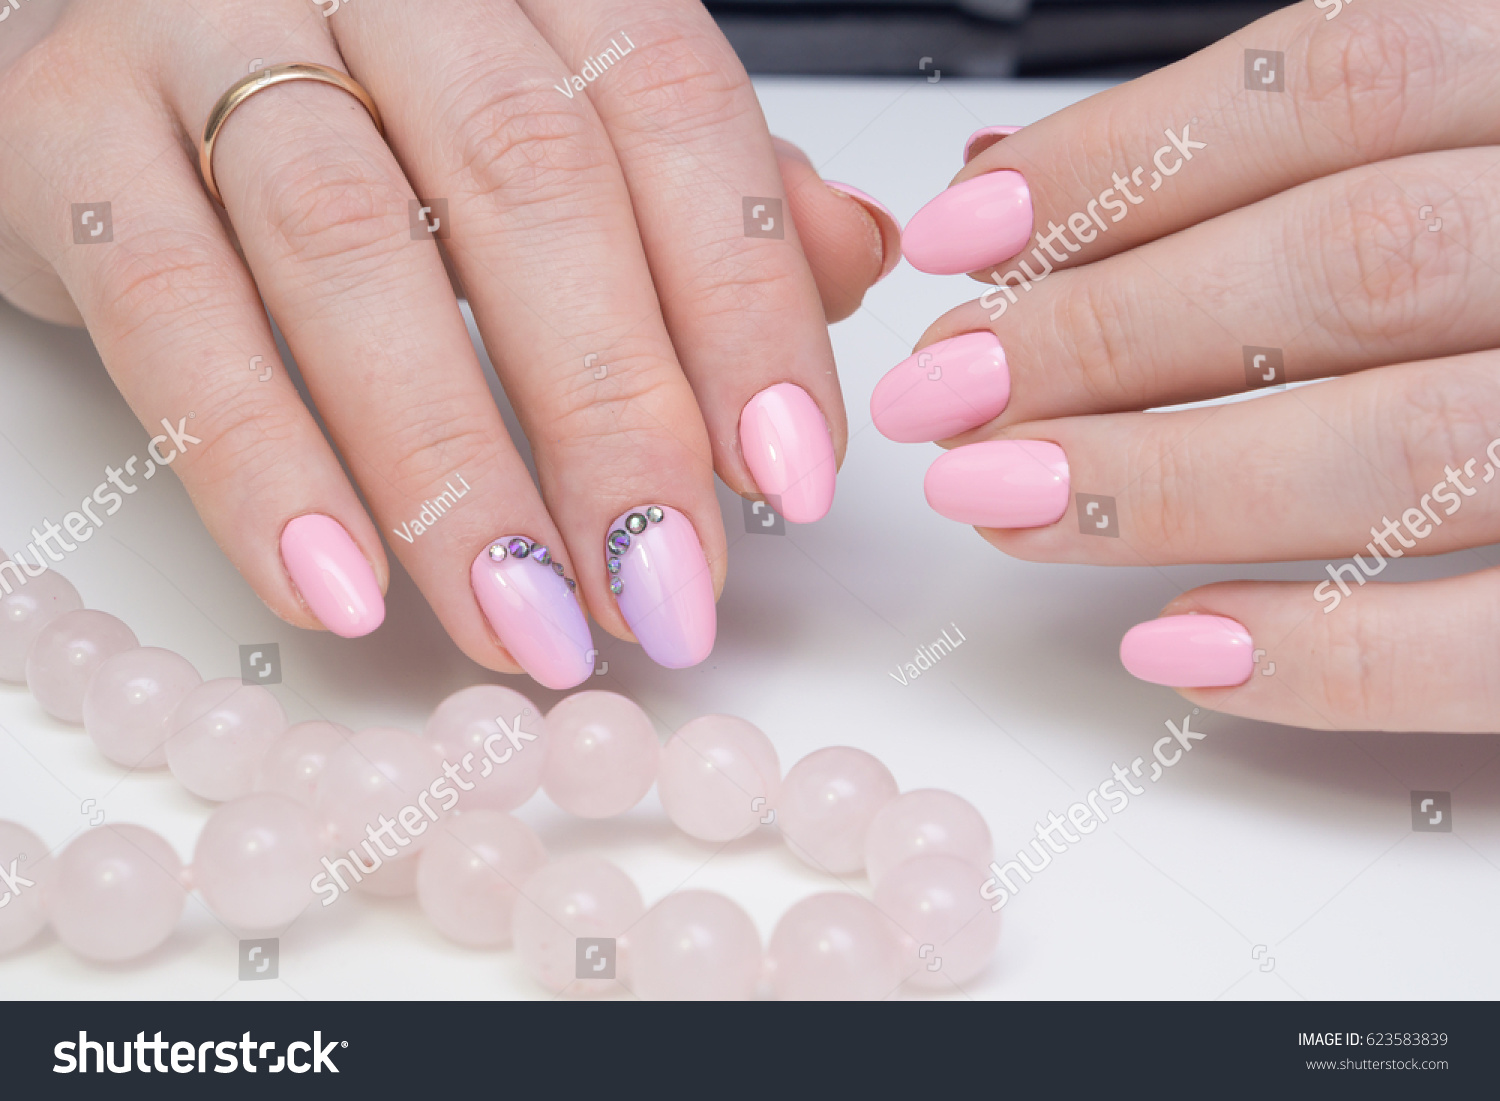 Natural Nails Amazing Clean Manicure Gel Stock Photo 623583839 ...